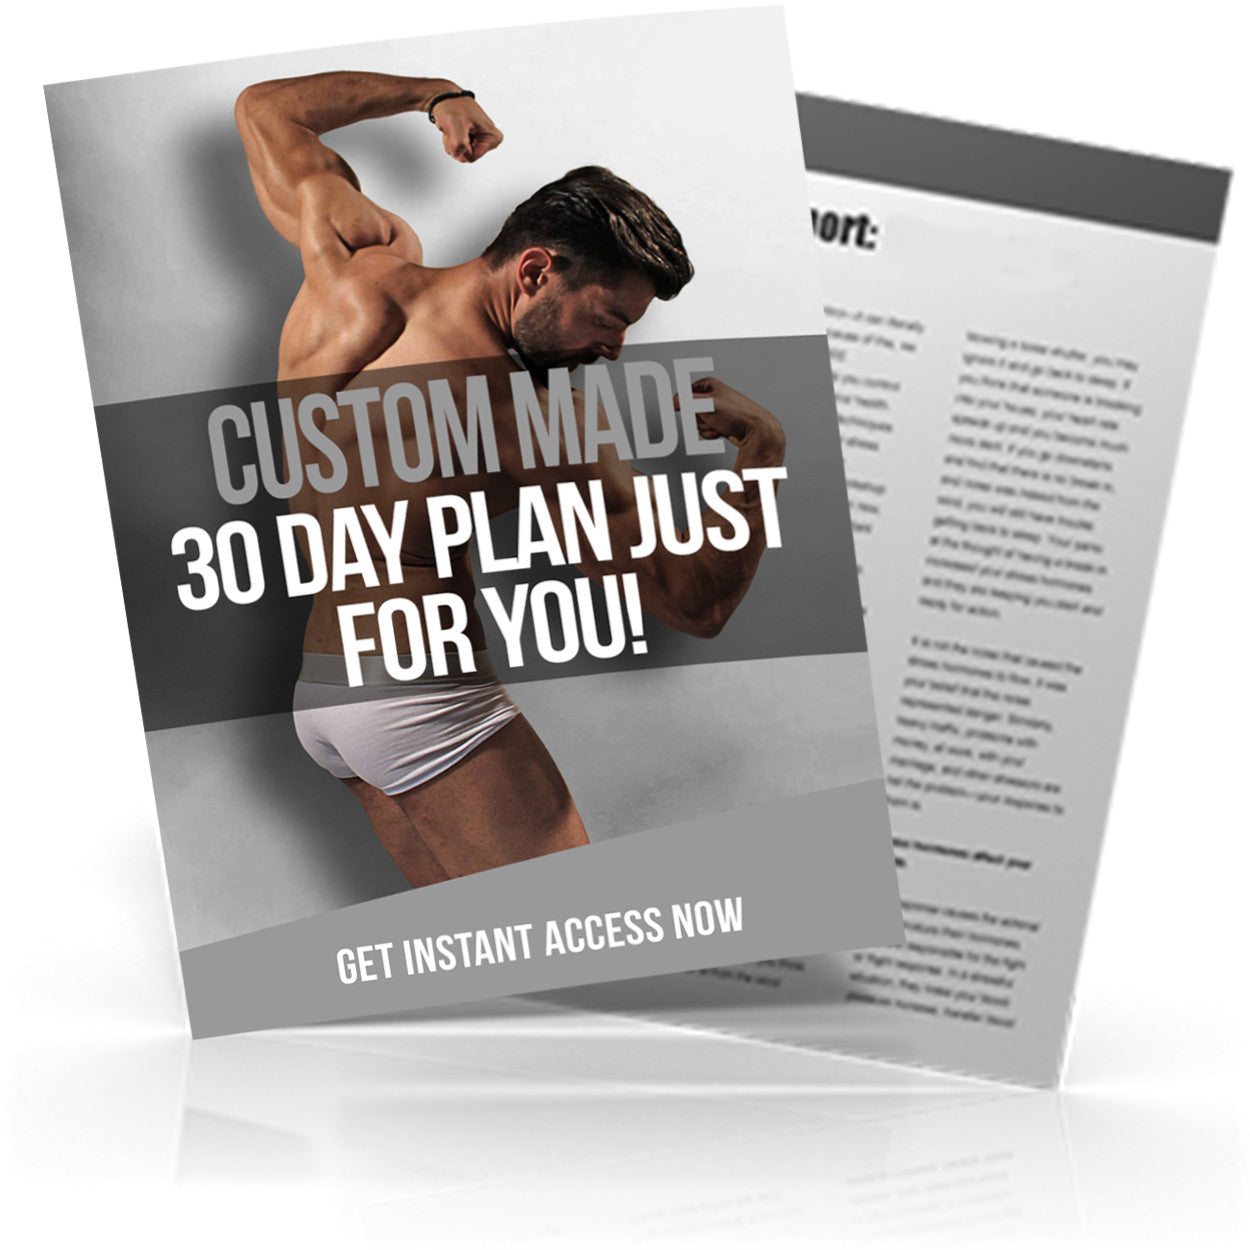 Easy meal plan lose weight fast